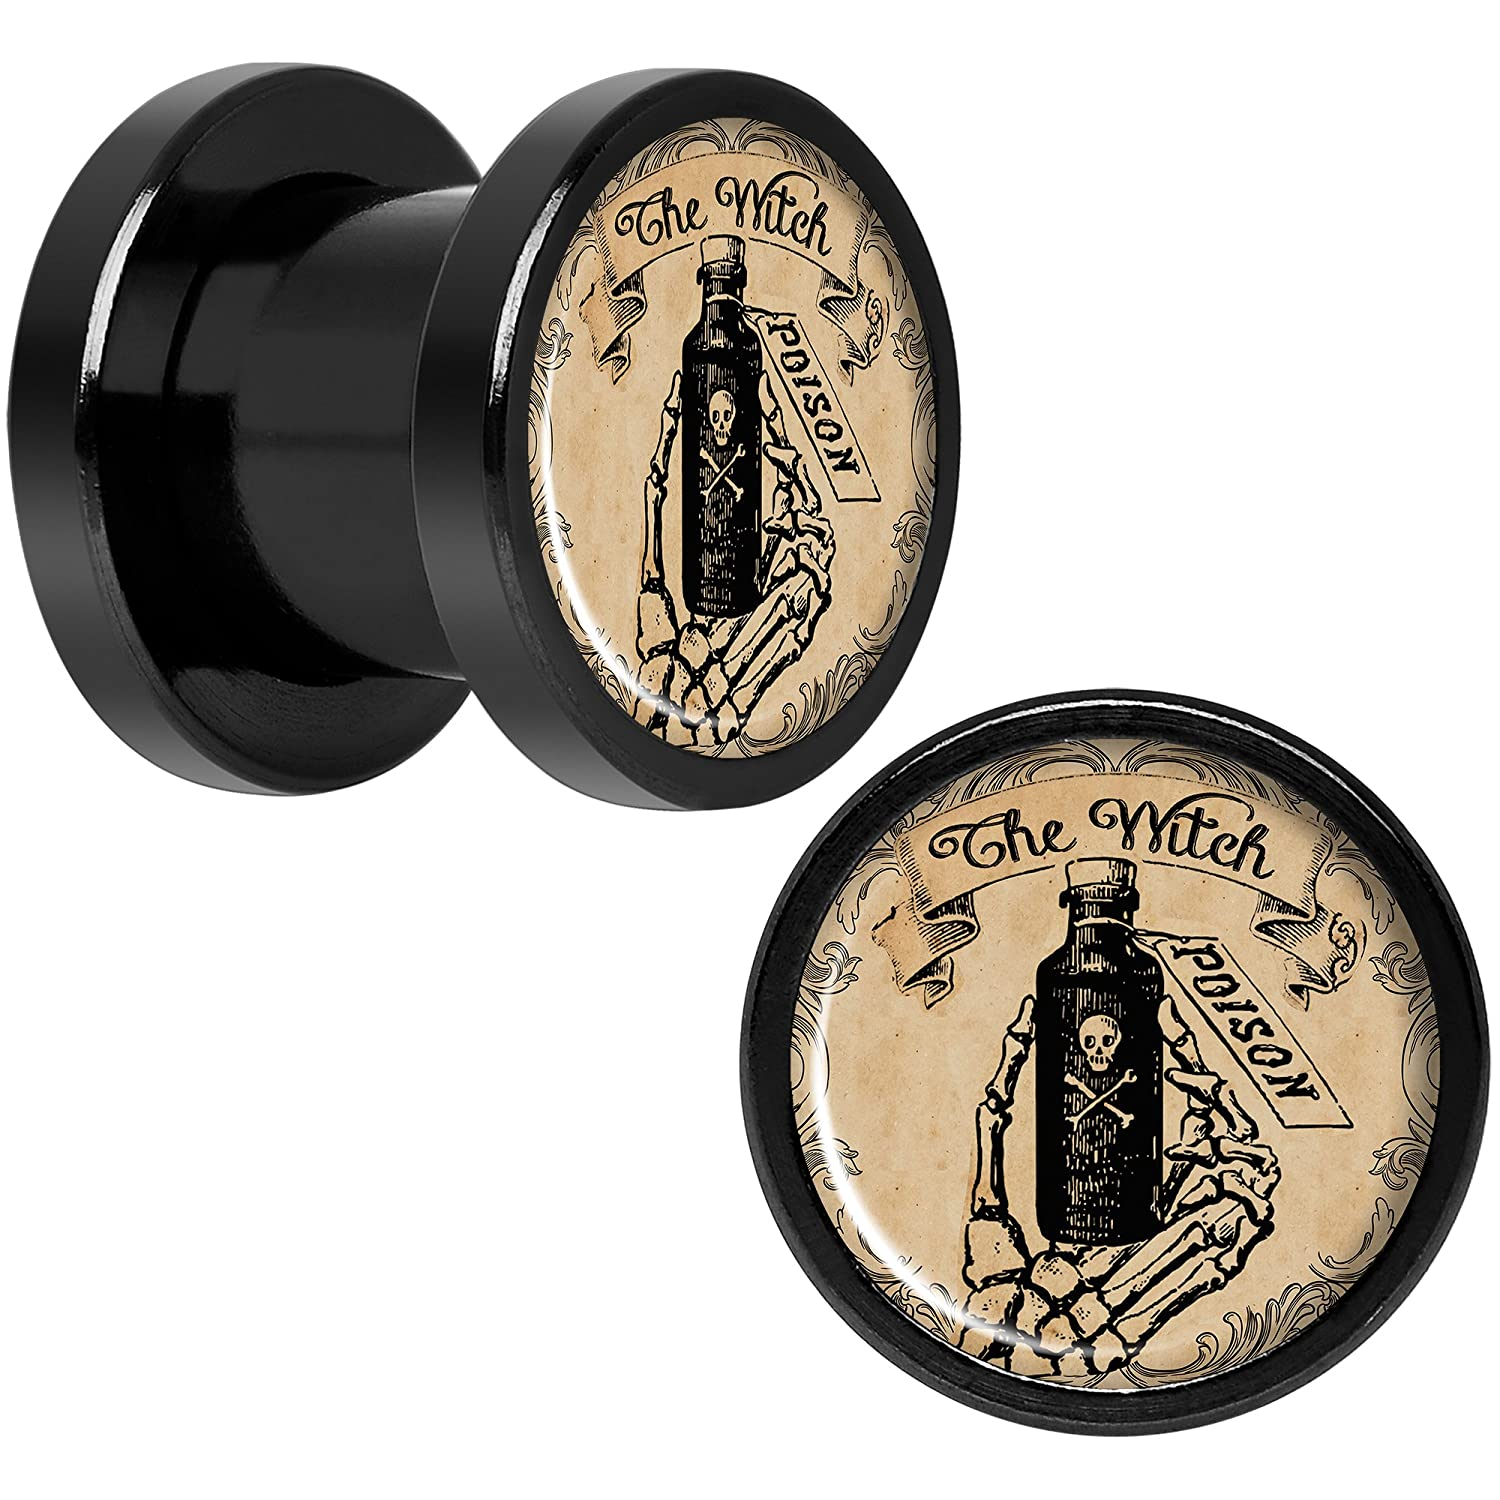 Body Candy Black Anodized Titanium Steel Witches Brew Poison Potion Halloween Plug Set of 2 8mm to 20mm